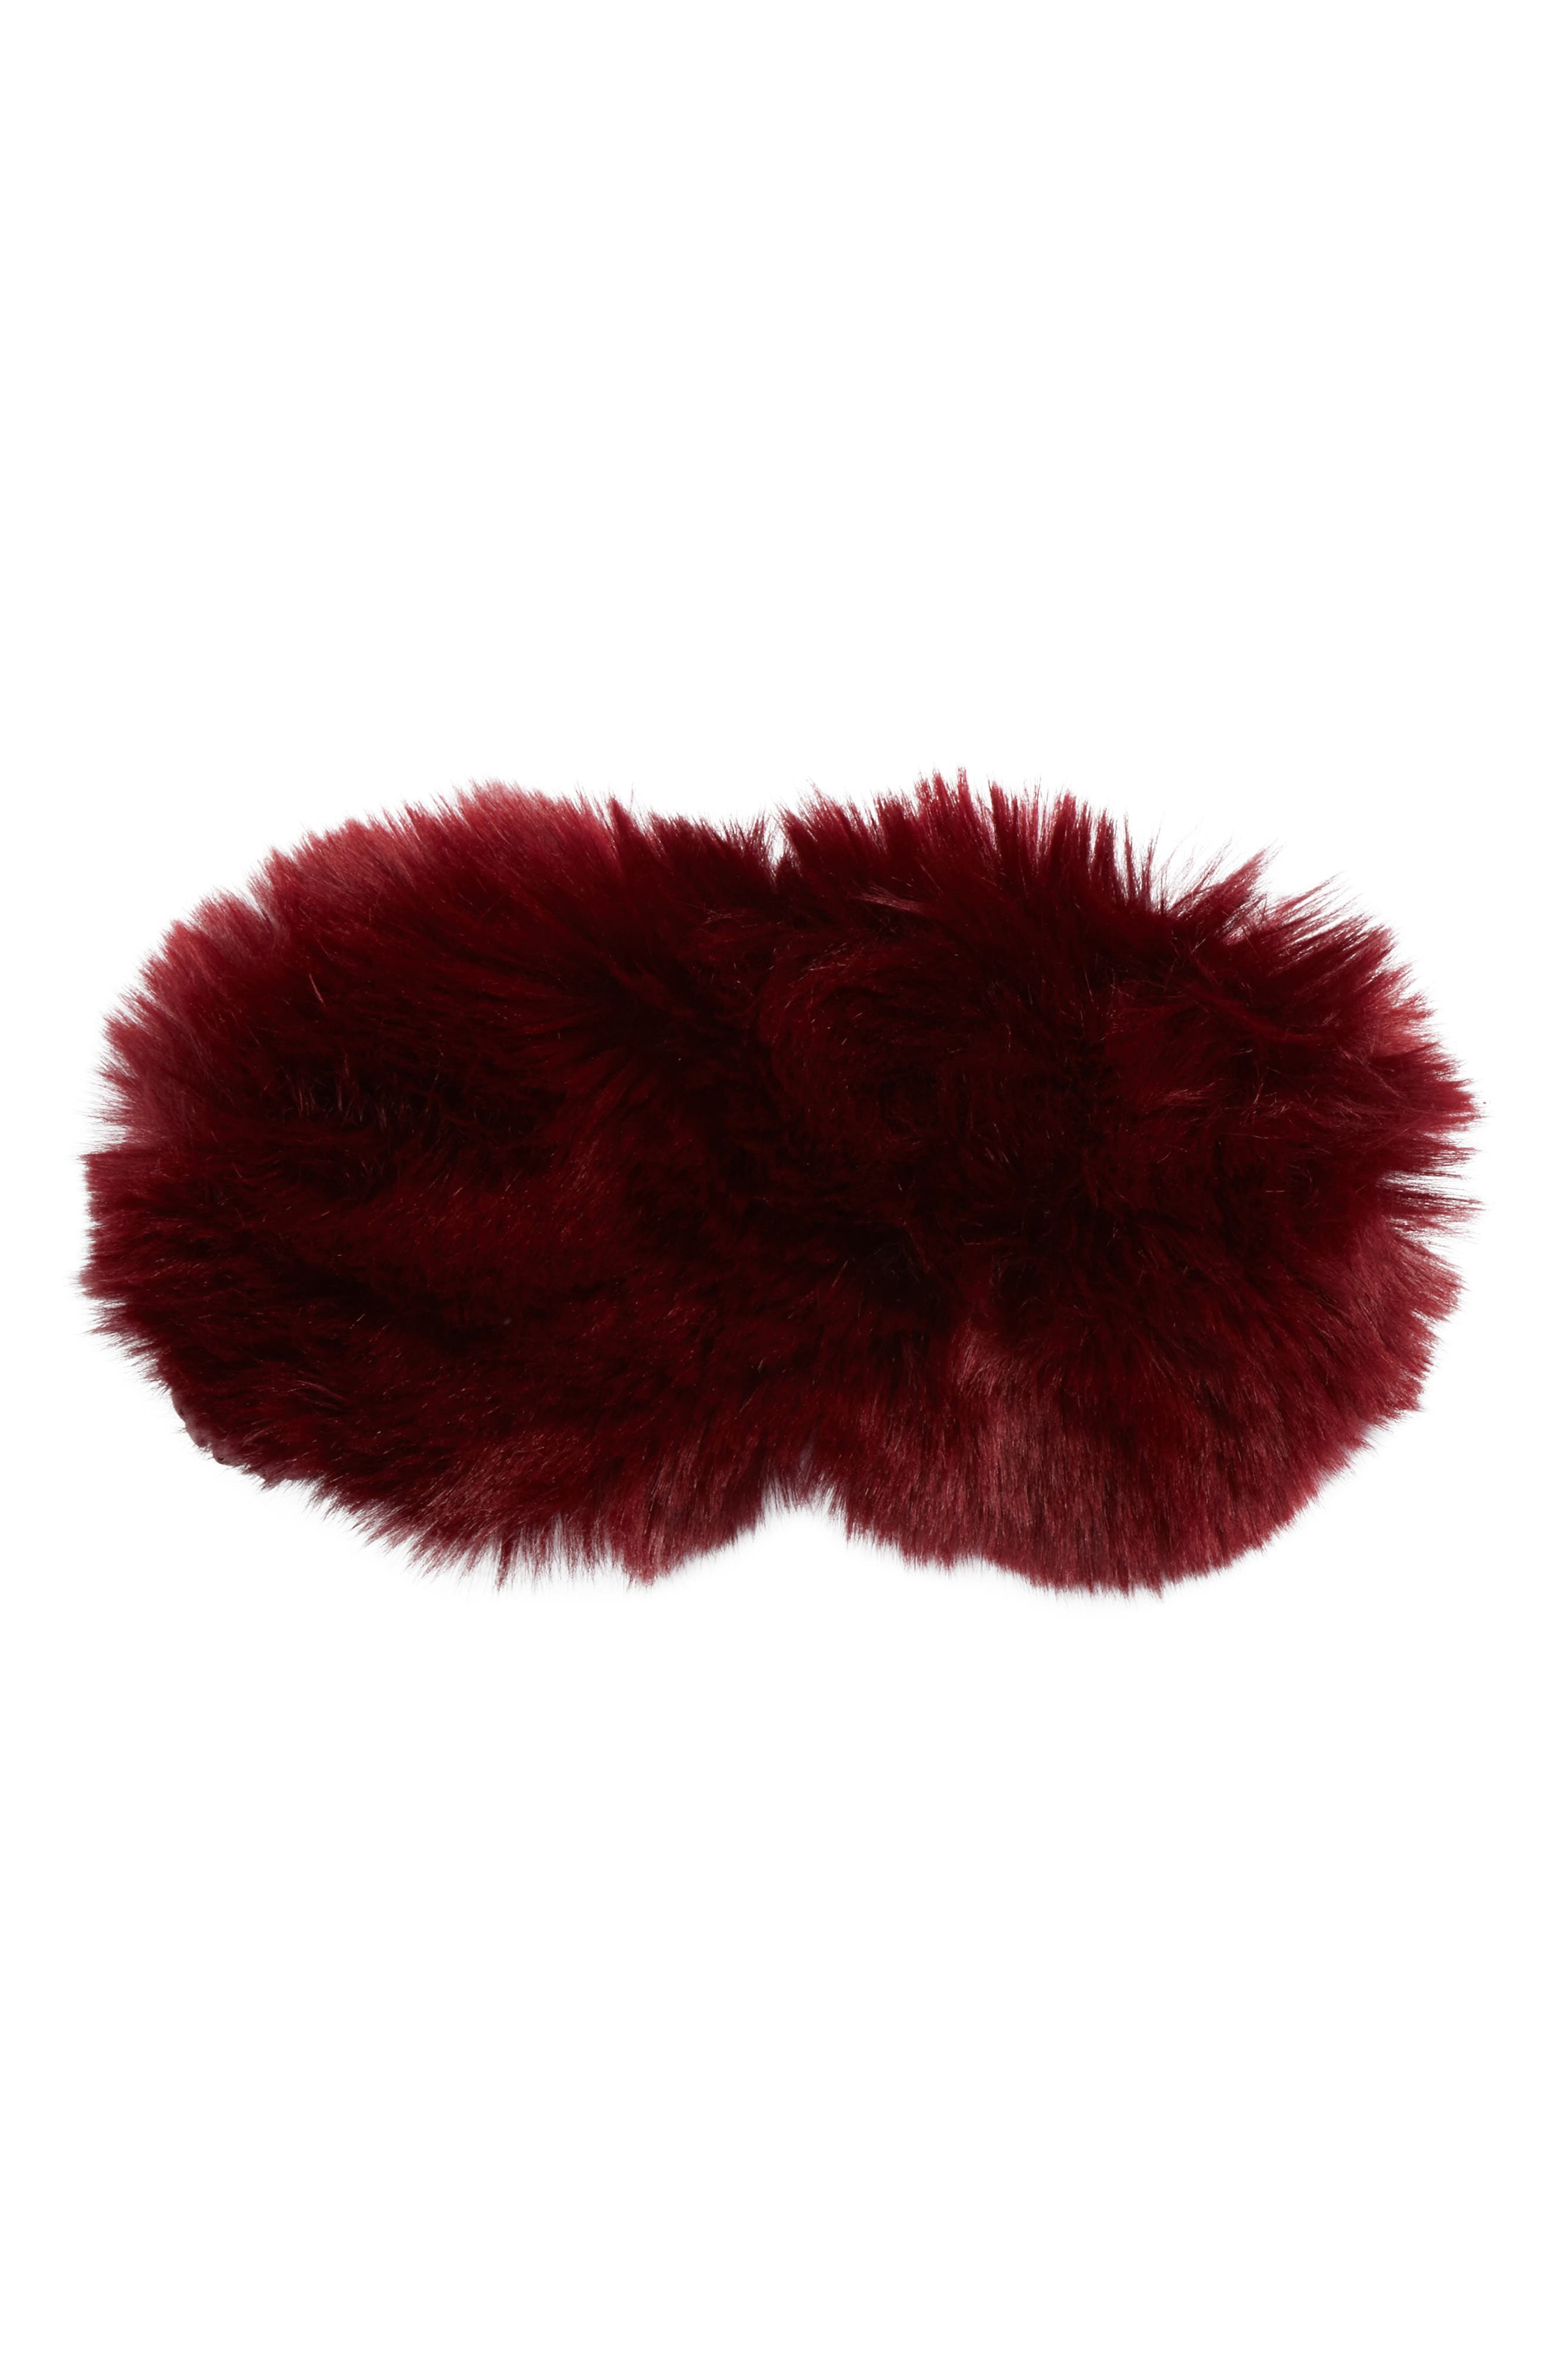 Nordstrom Faux Fur Eye Mask,                             Main thumbnail 2, color,